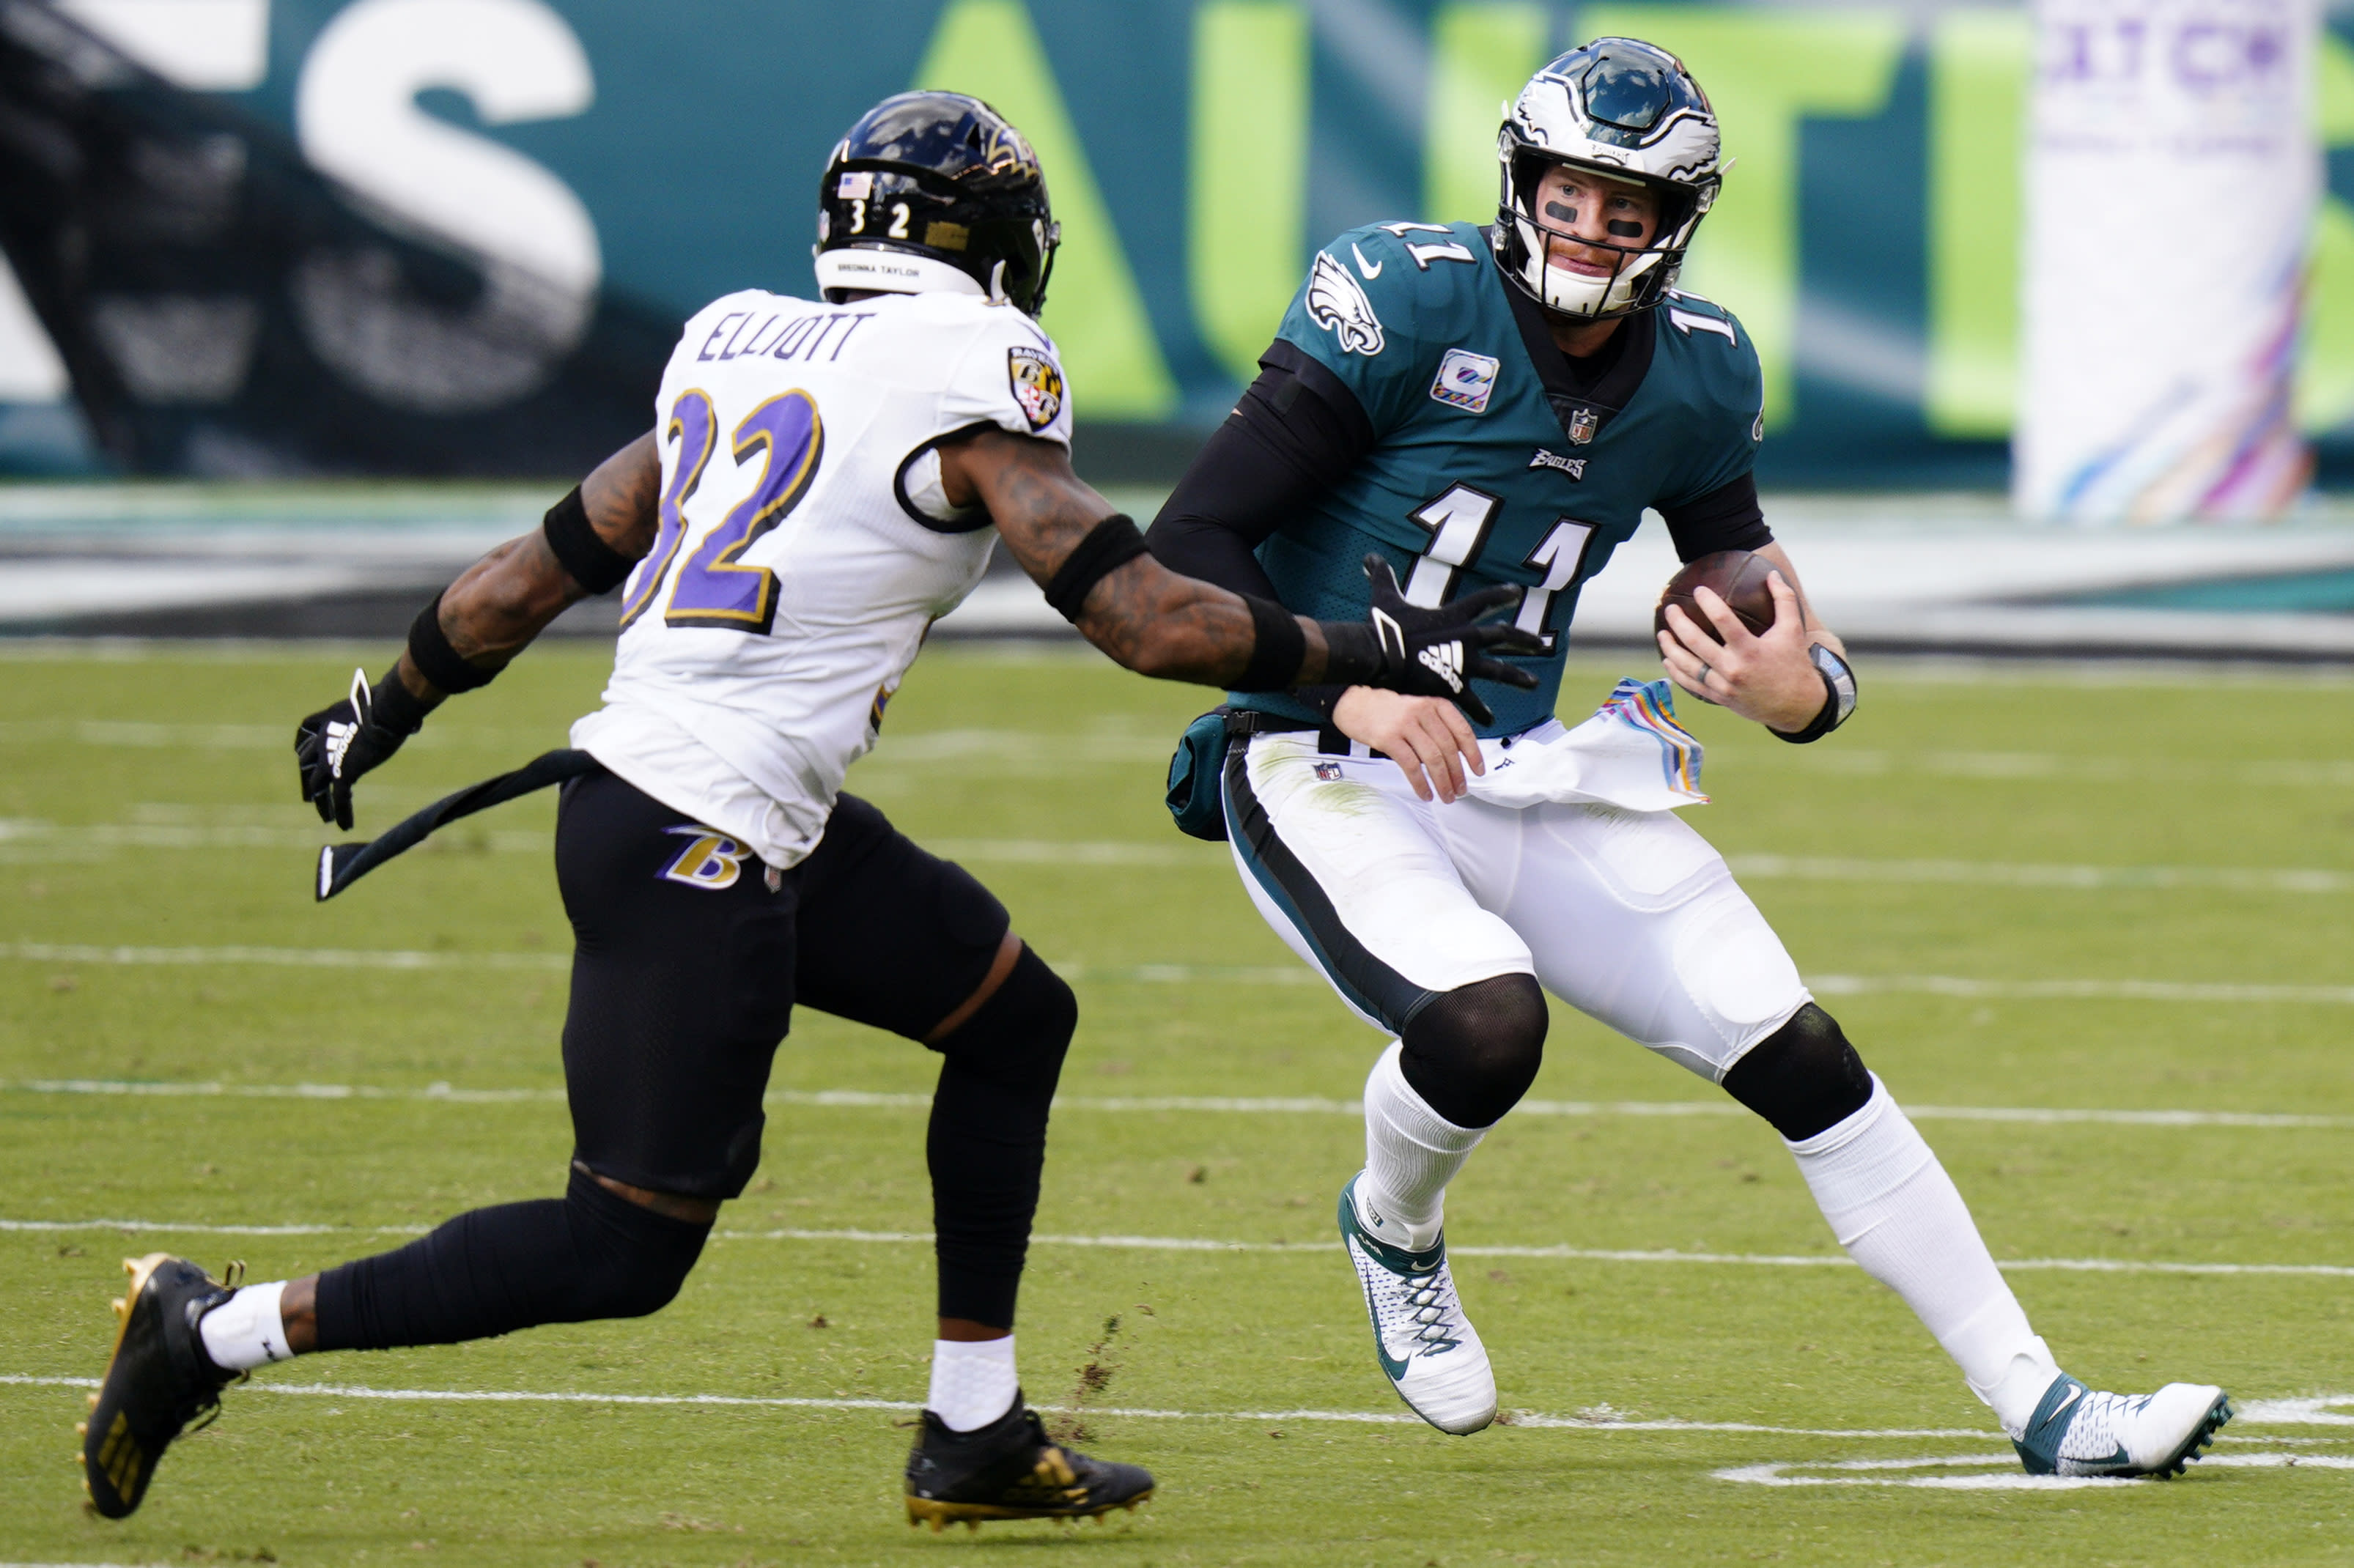 Philadelphia Eagles' Carson Wentz (11) tries to get past Baltimore Ravens' DeShon Elliott (32) during the first half of an NFL football game, Sunday, Oct. 18, 2020, in Philadelphia. (AP Photo/Chris Szagola)